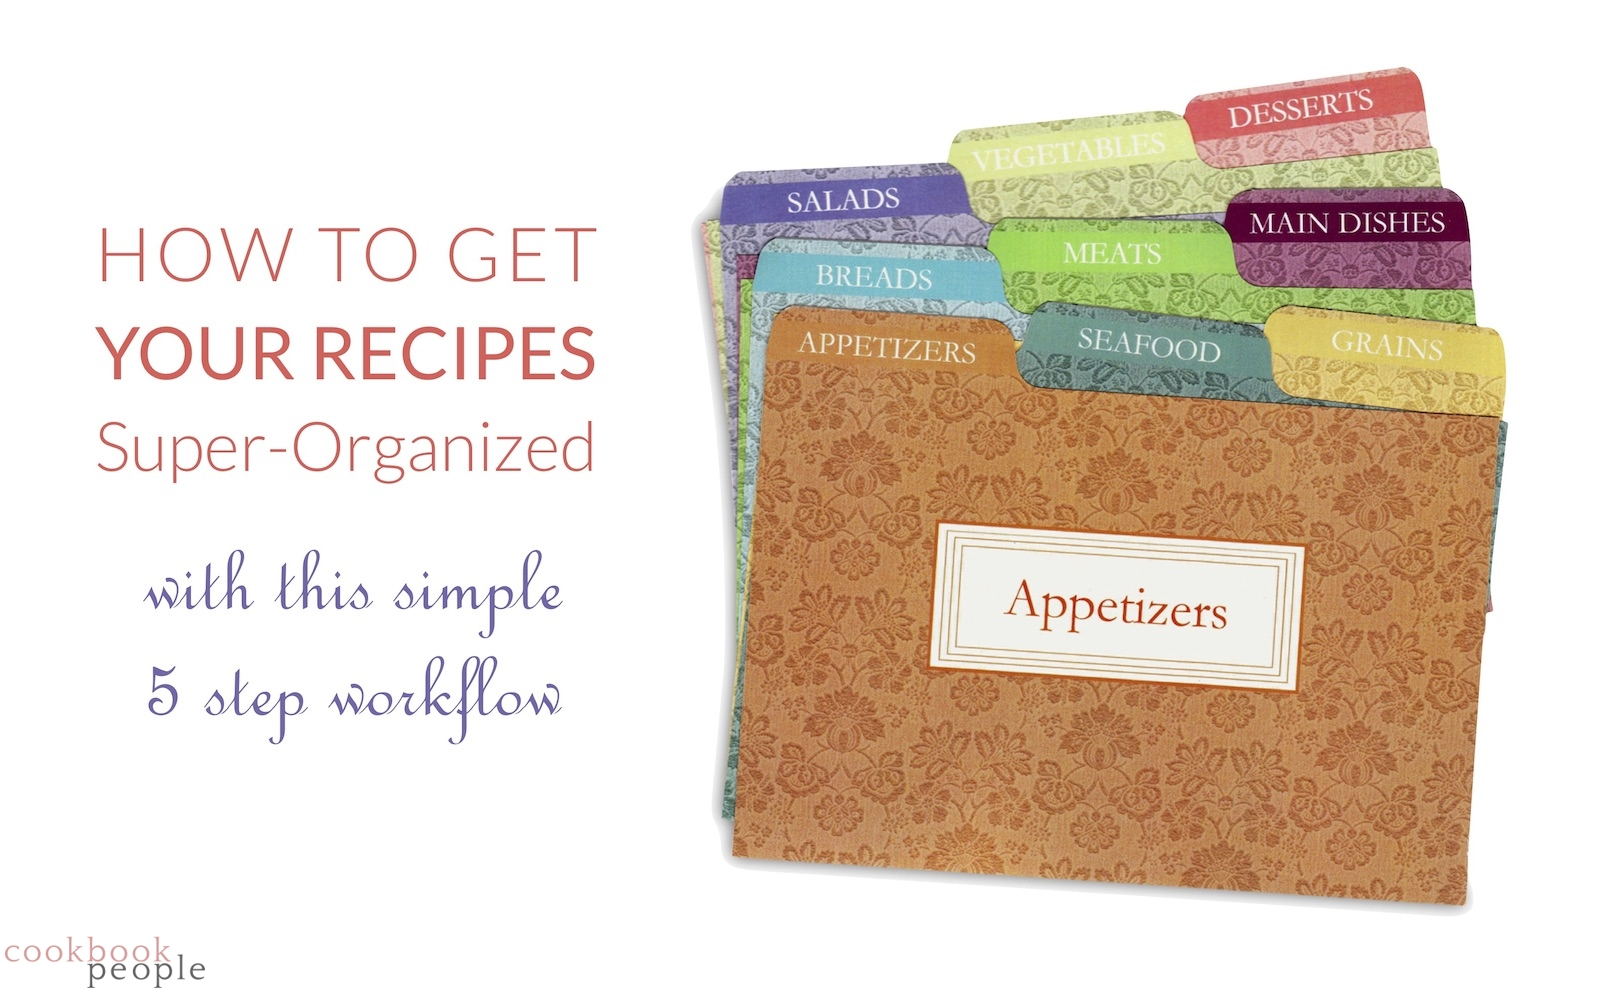 Cookbook people 4x6 tabbed recipe box card dividers with title: How to Get Your Recipes Super-Organized with this simple 5 step workflow